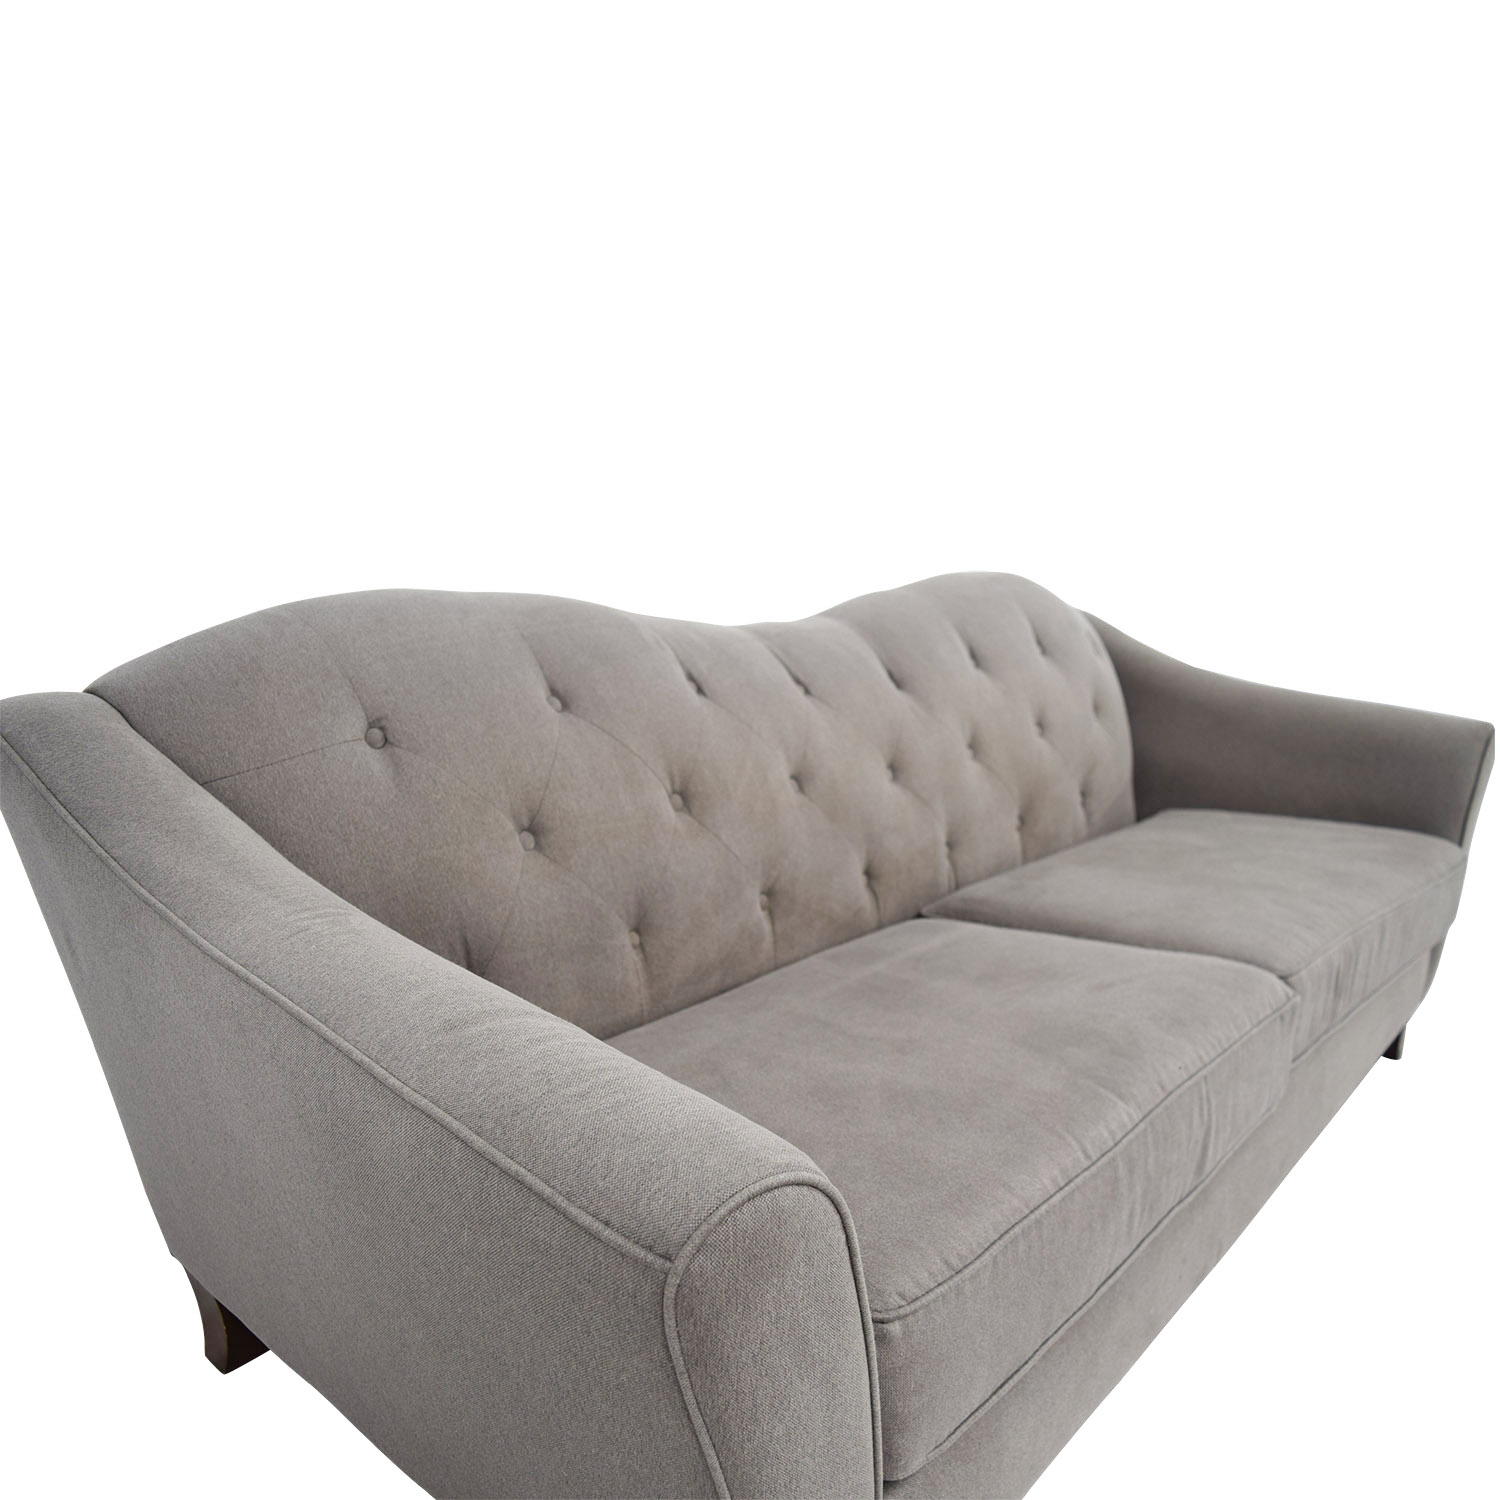 Curved Sofa 85 Off Macy S Macy S Brindle Grey Tufted Curved Sofa Sofas